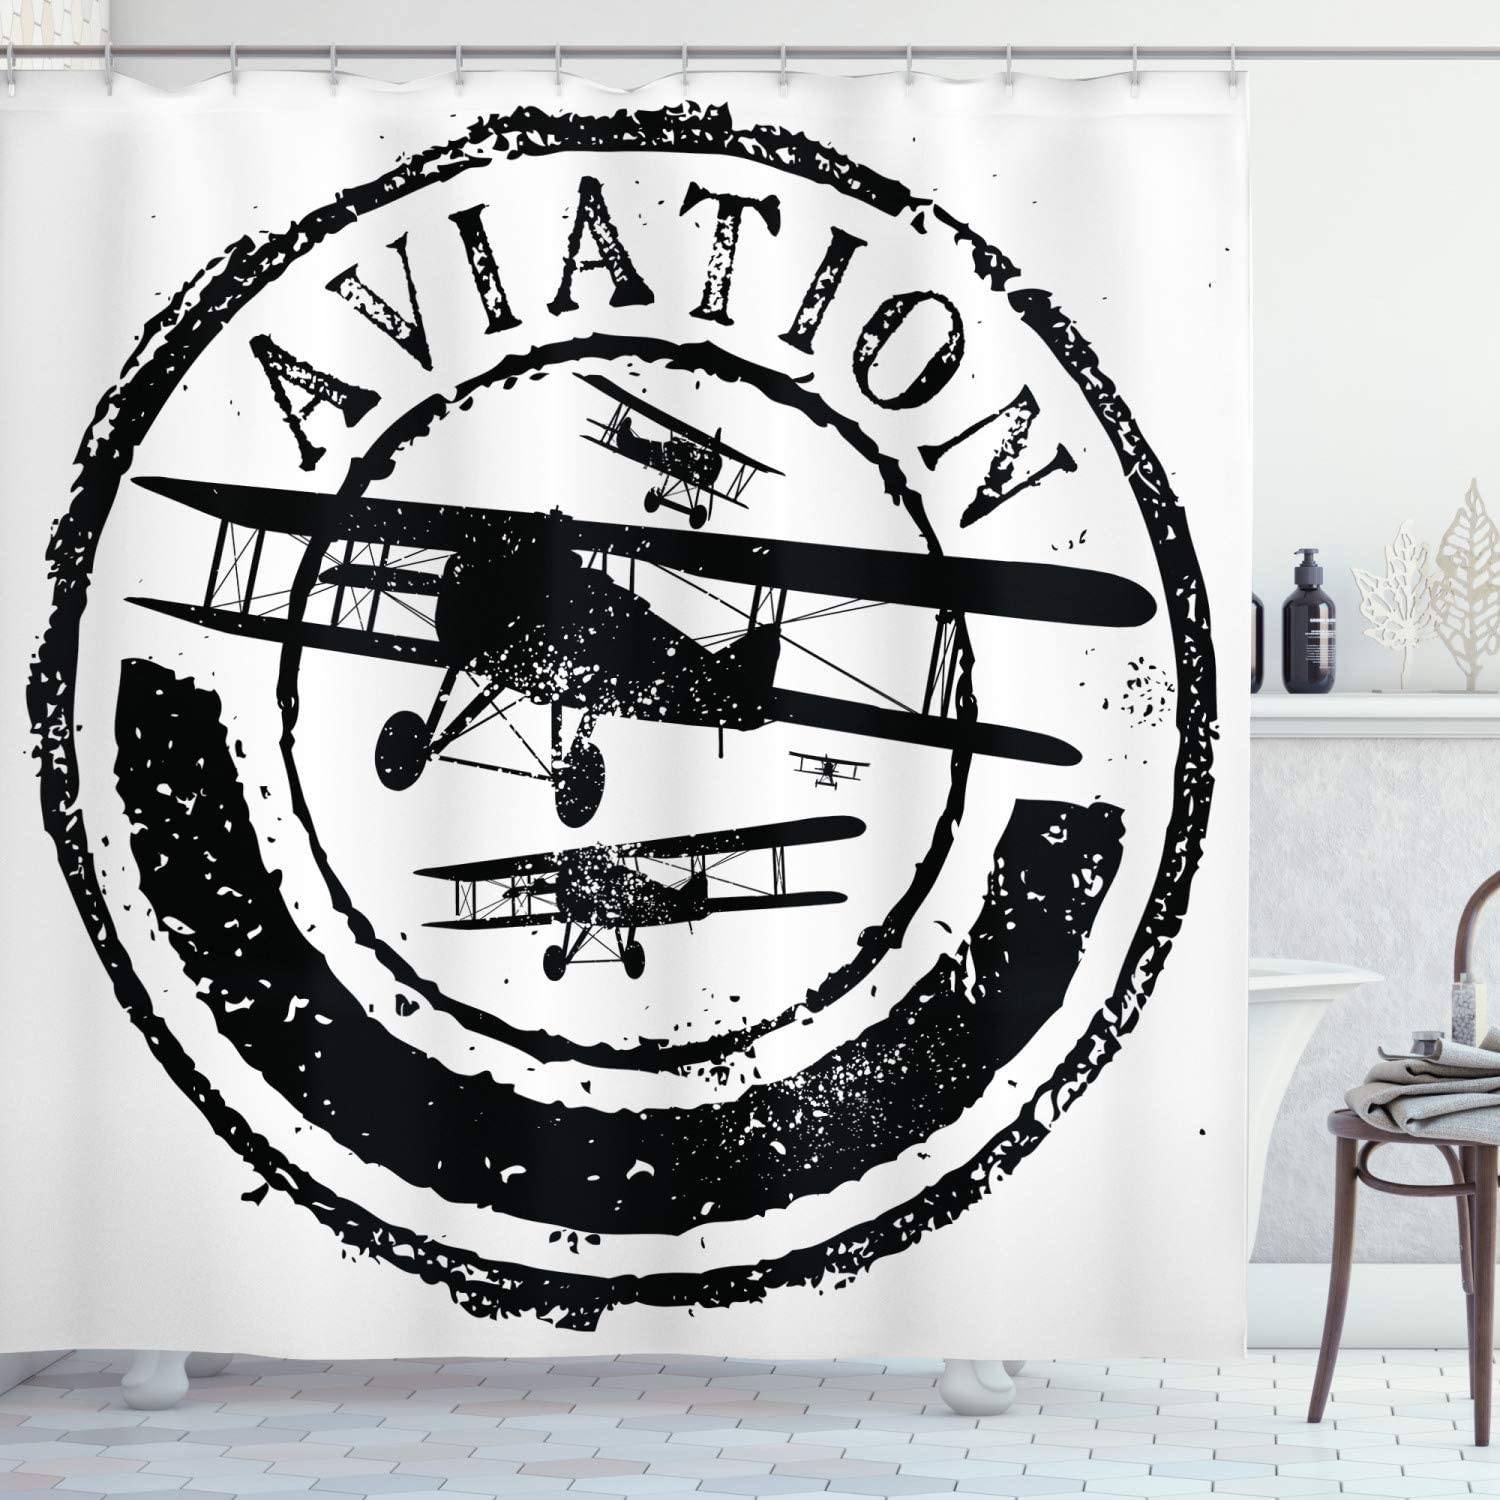 "Ambesonne Vintage Airplane Shower Curtain, Grunge Style Stamp Design with Word Aviation and Airplane Silhouettes, Cloth Fabric Bathroom Decor Set with Hooks, 70"" Long, Black and White"